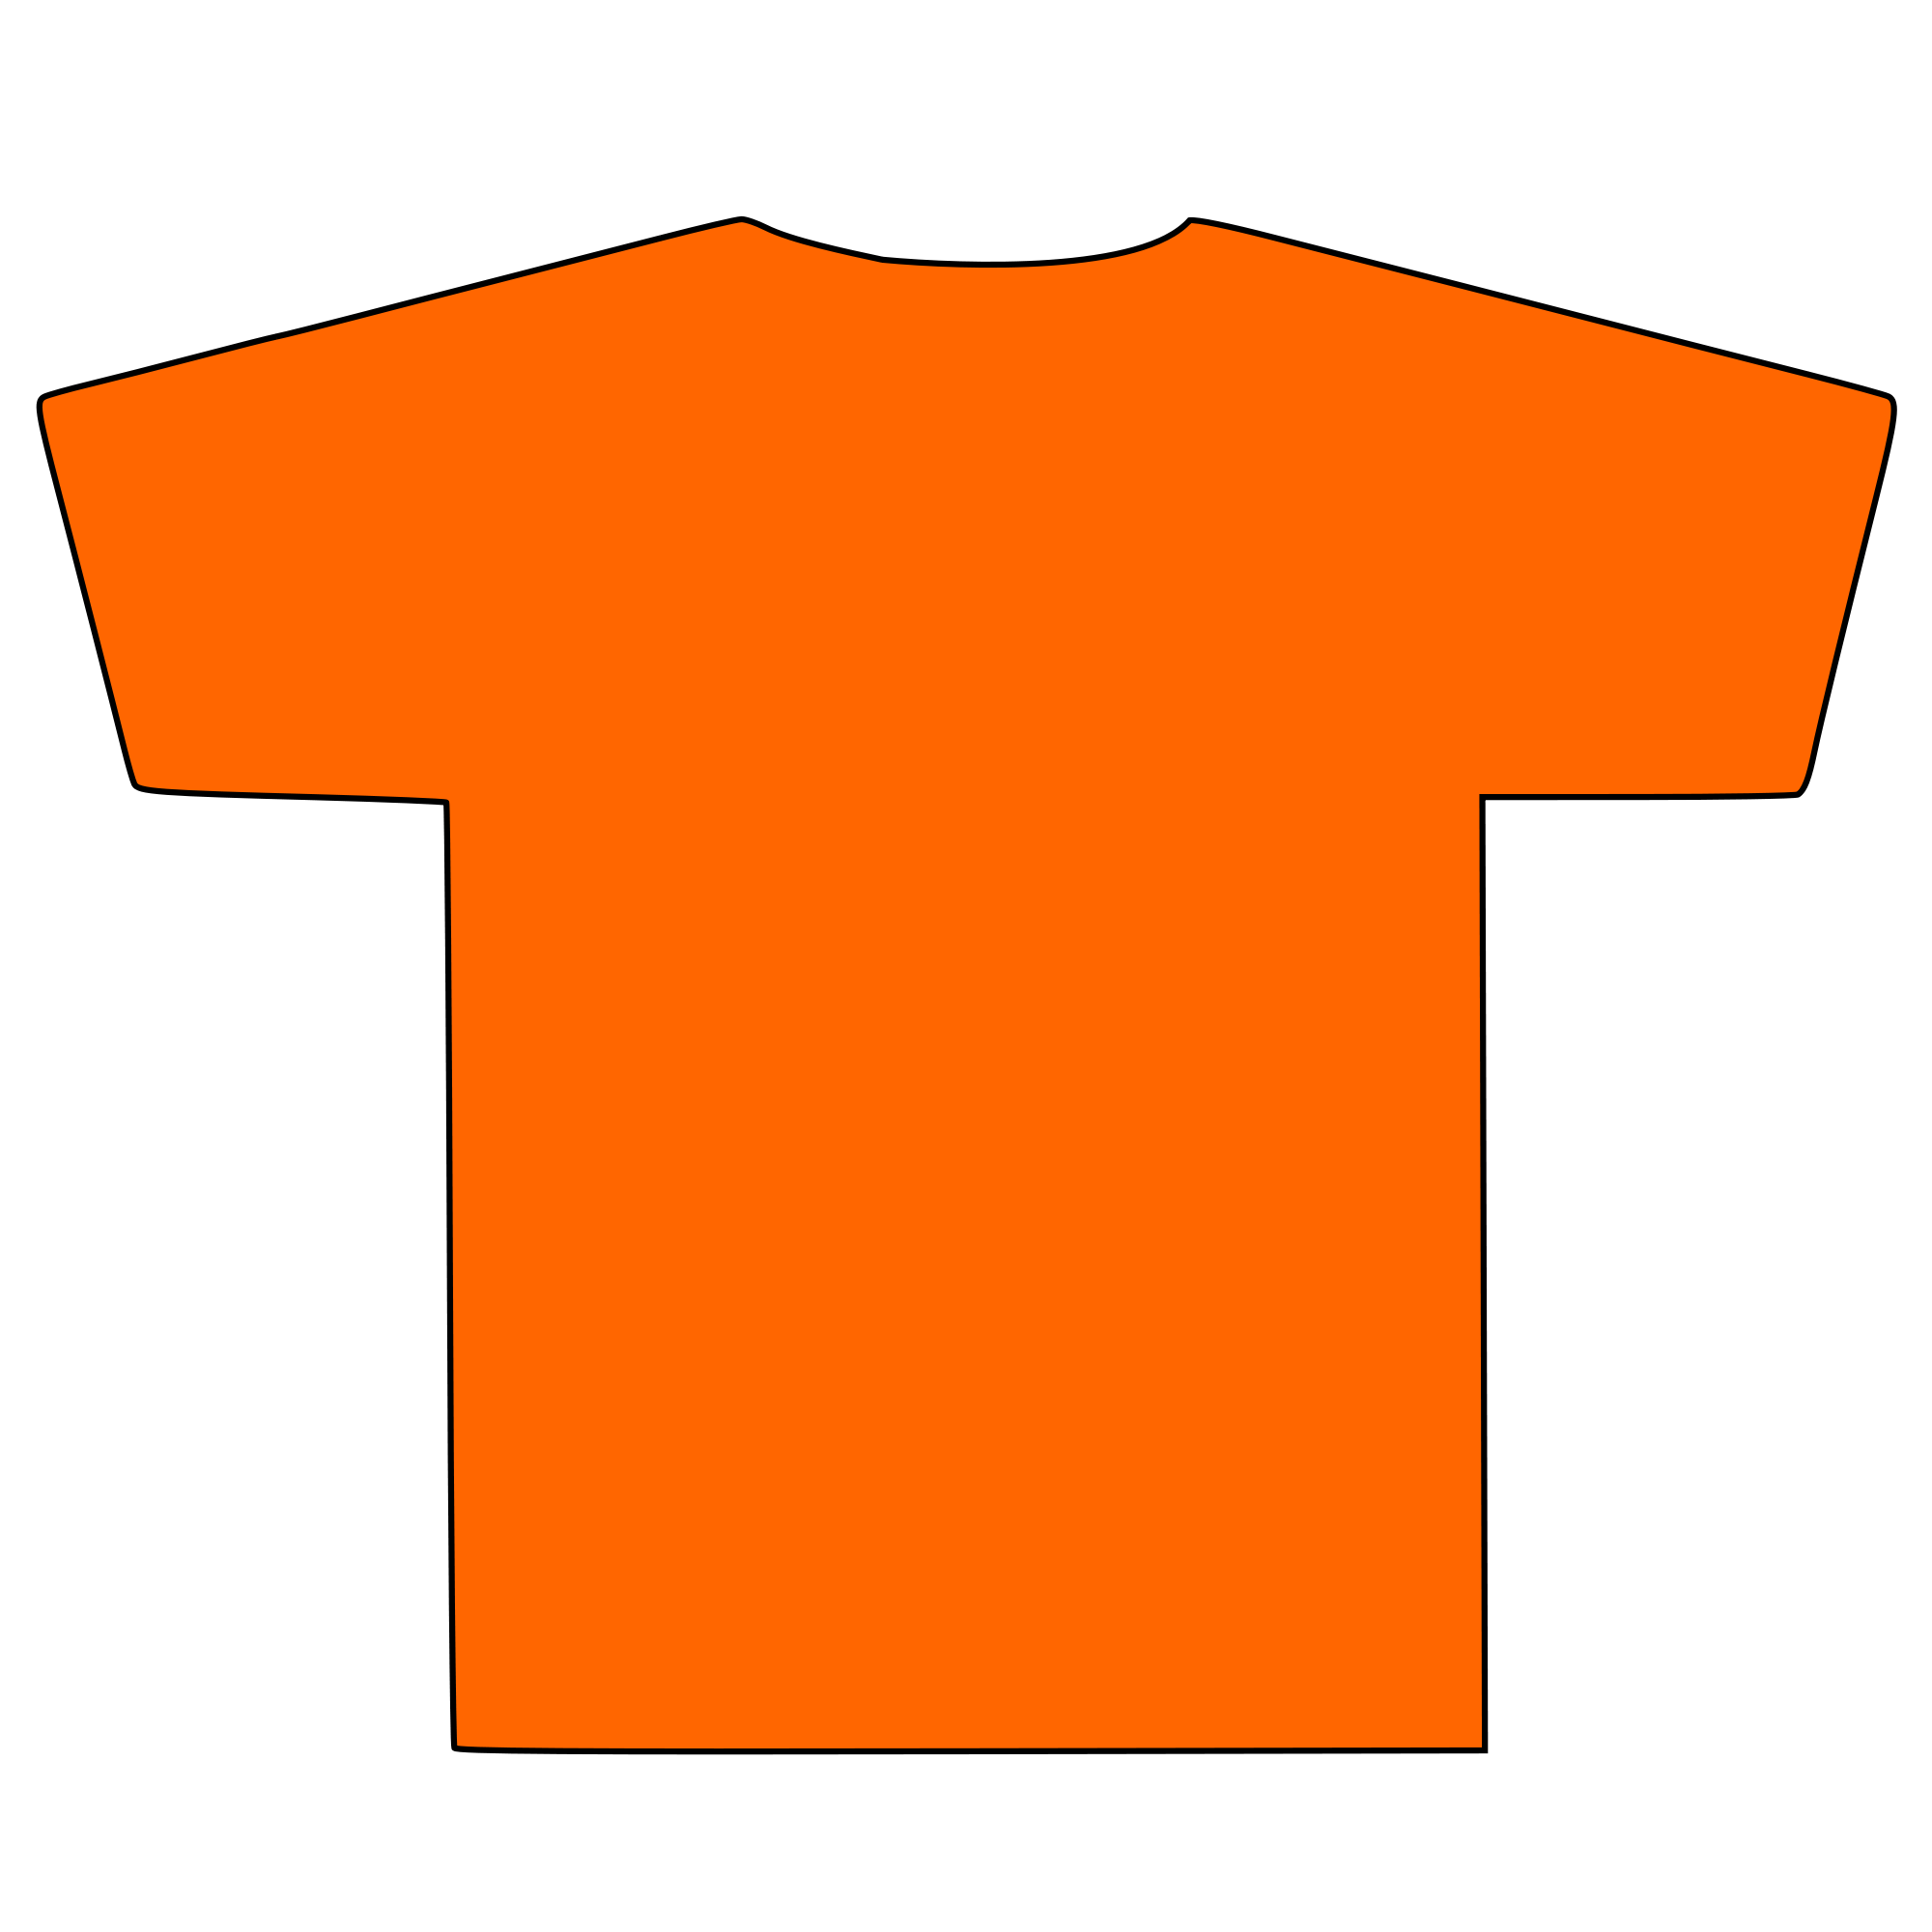 T Shirt Silhouette Png.